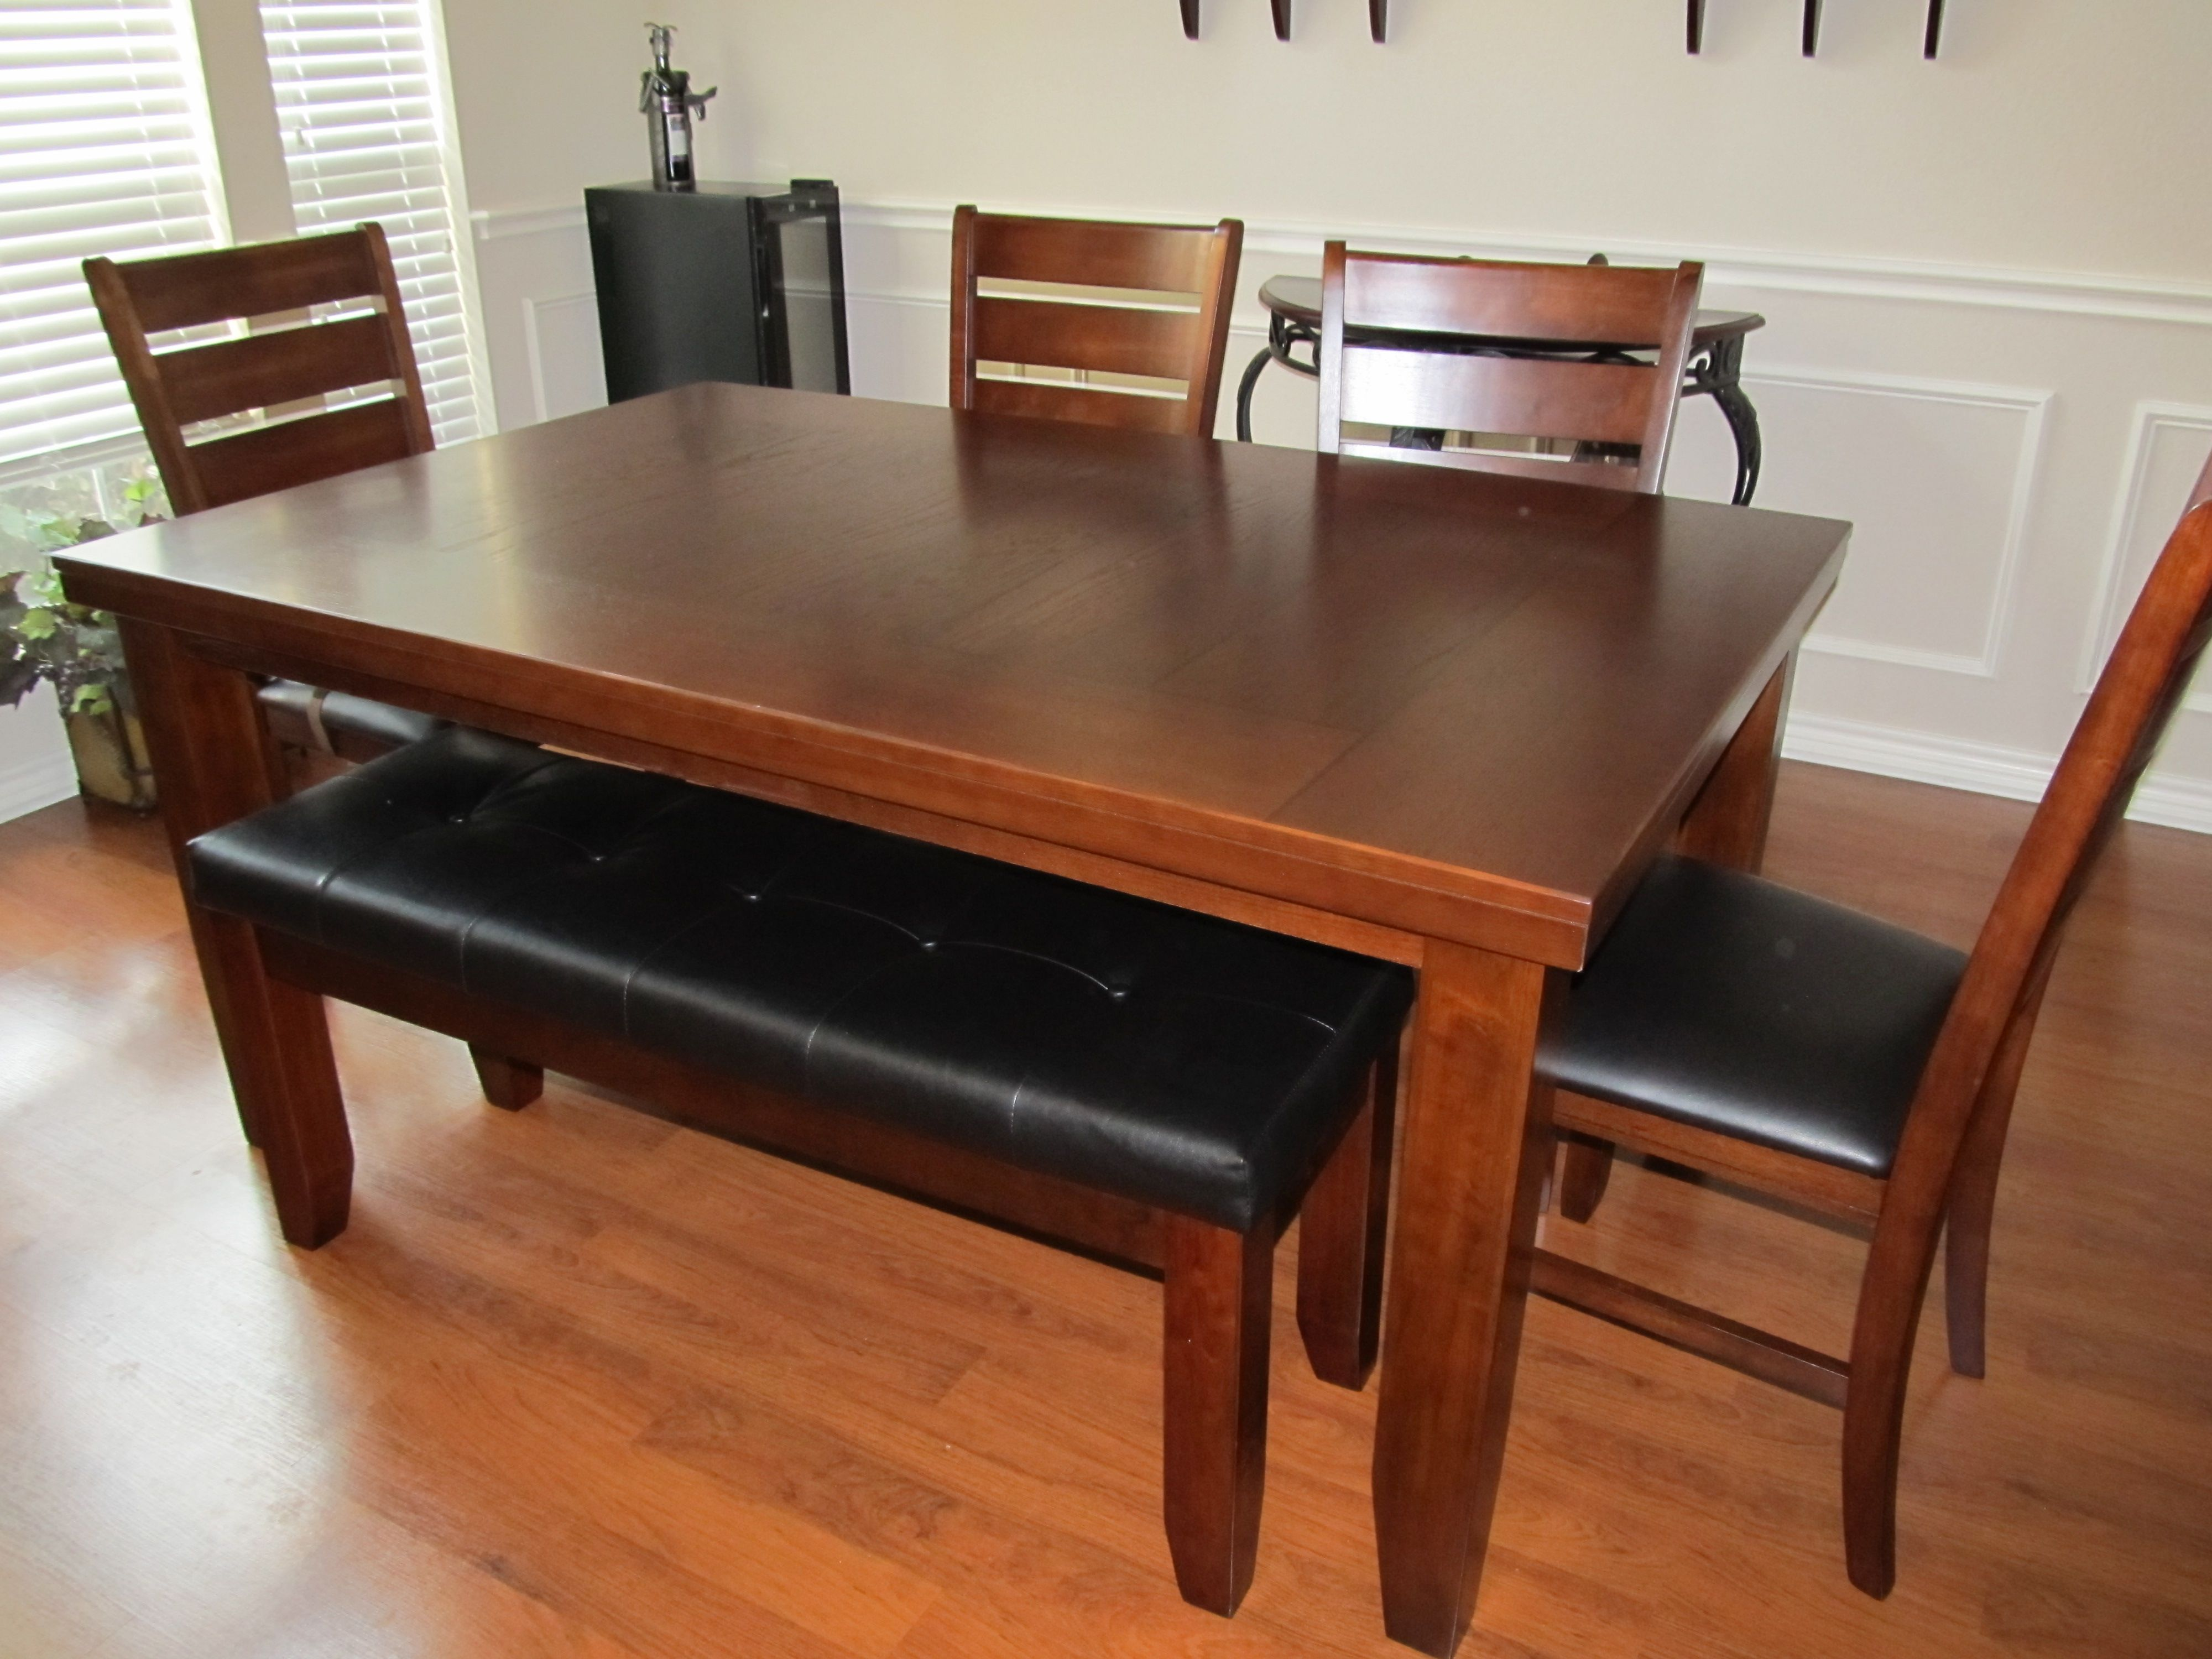 dining table with bench seats elegant rustic brown polished room ...